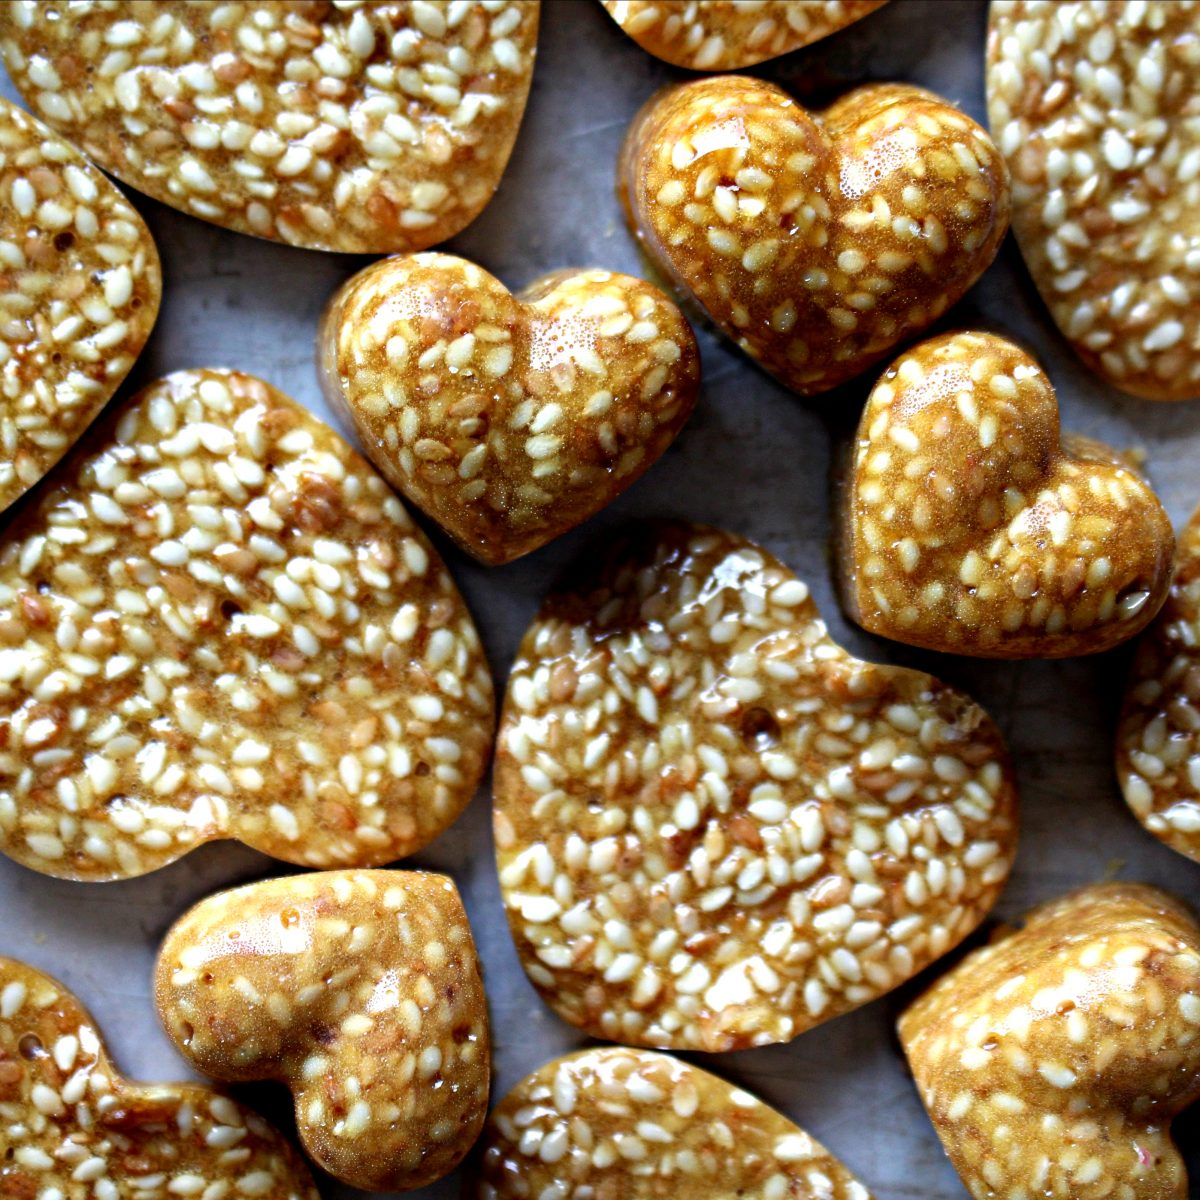 Closeup of shiny, golden brown heart shaped brittle pieces full of sesame seeds.